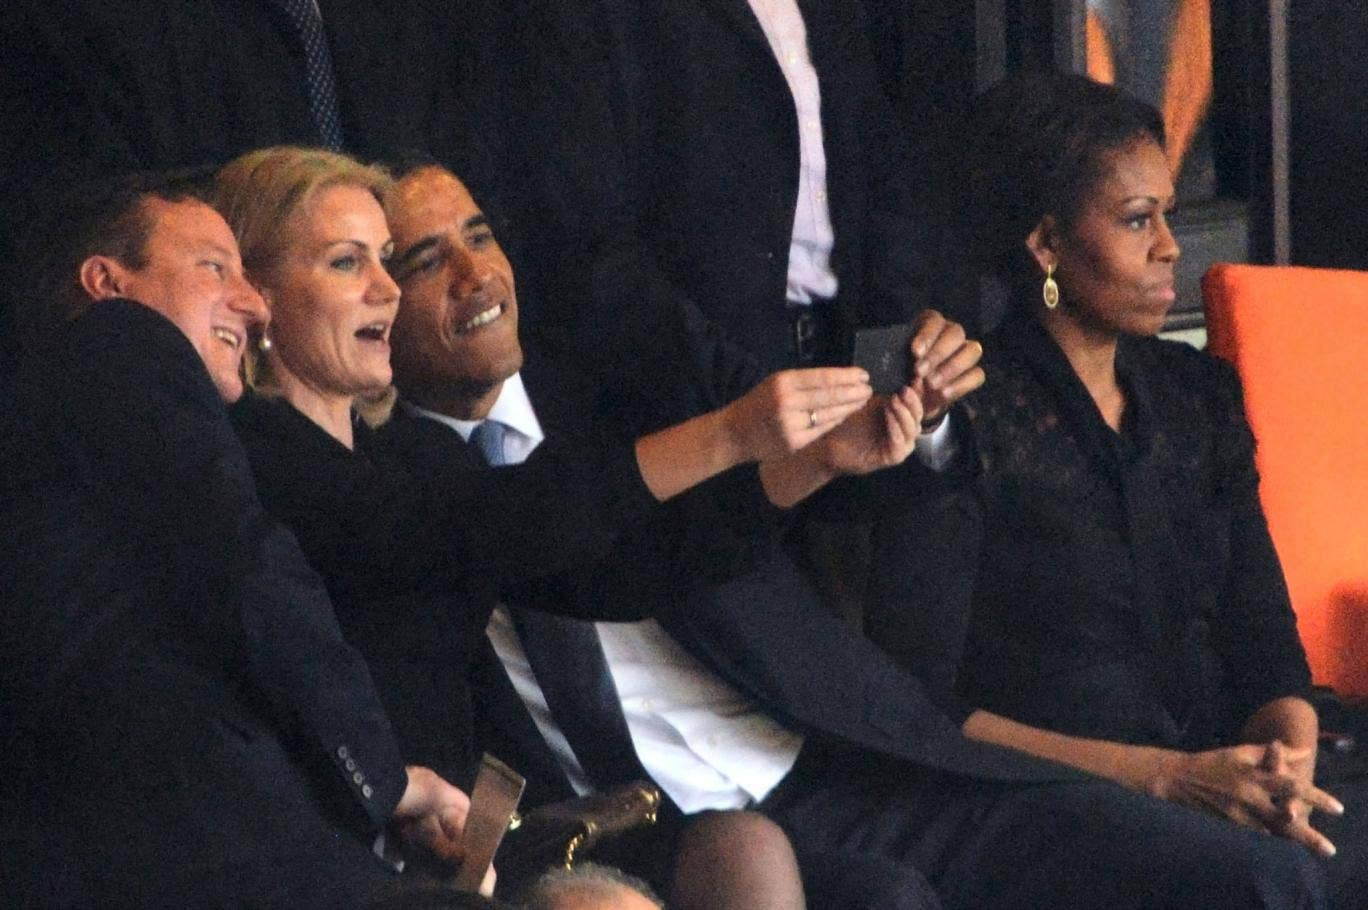 Obama and Cameron cosy up for selfie with Danish PM at Nelson Mandela's memorial service